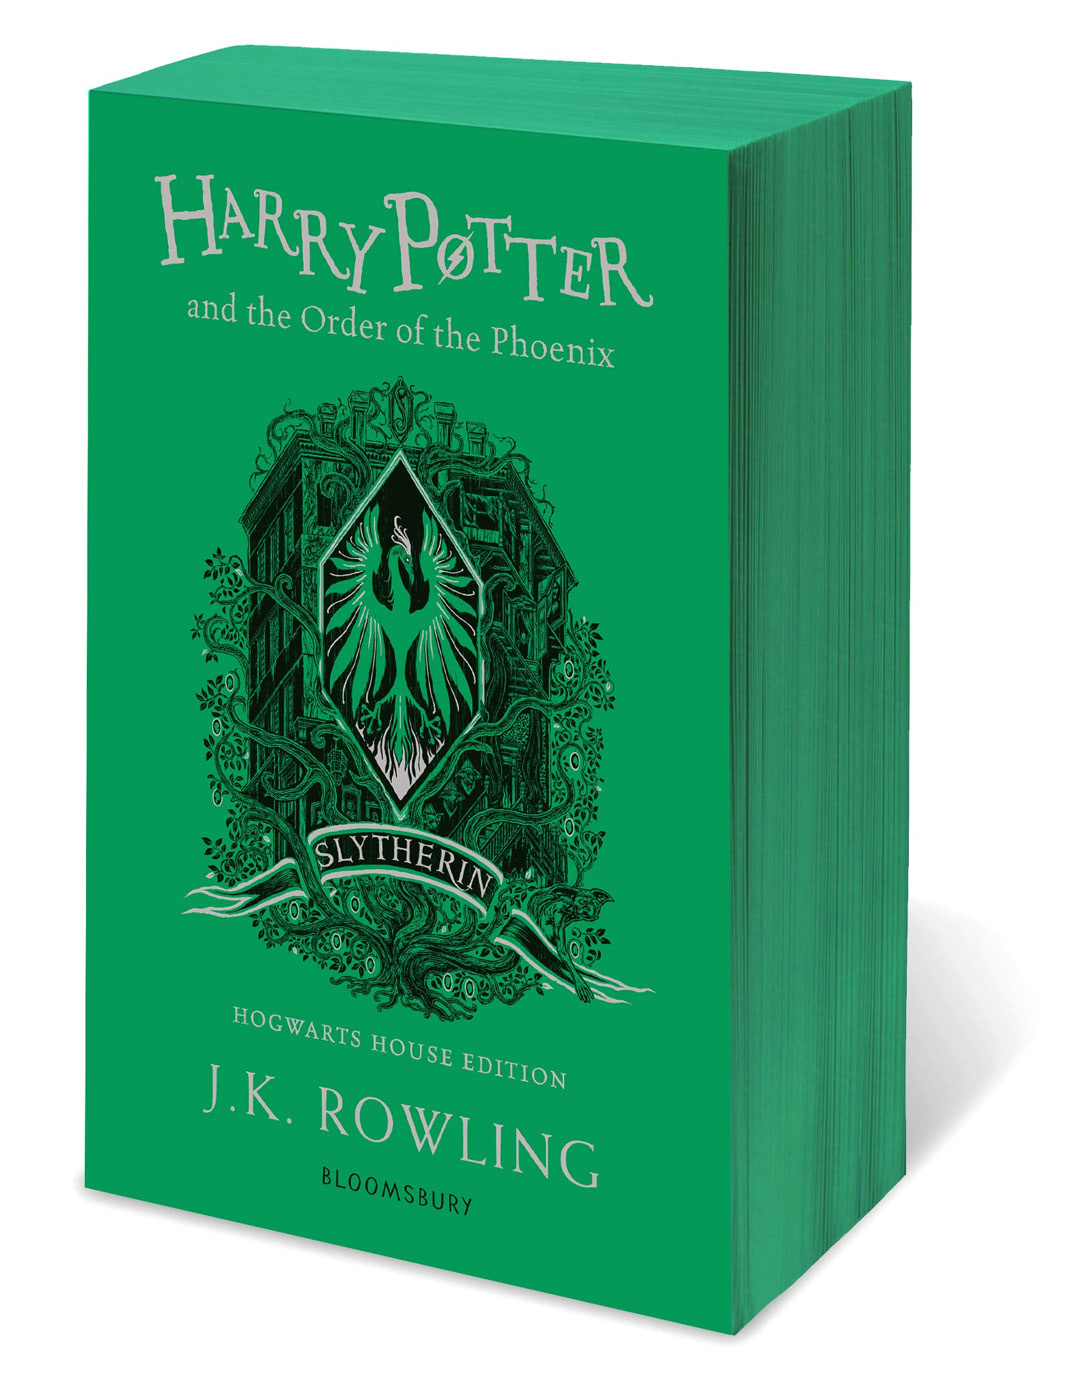 'Order of the Phoenix' house edition (Slytherin) (paperback)